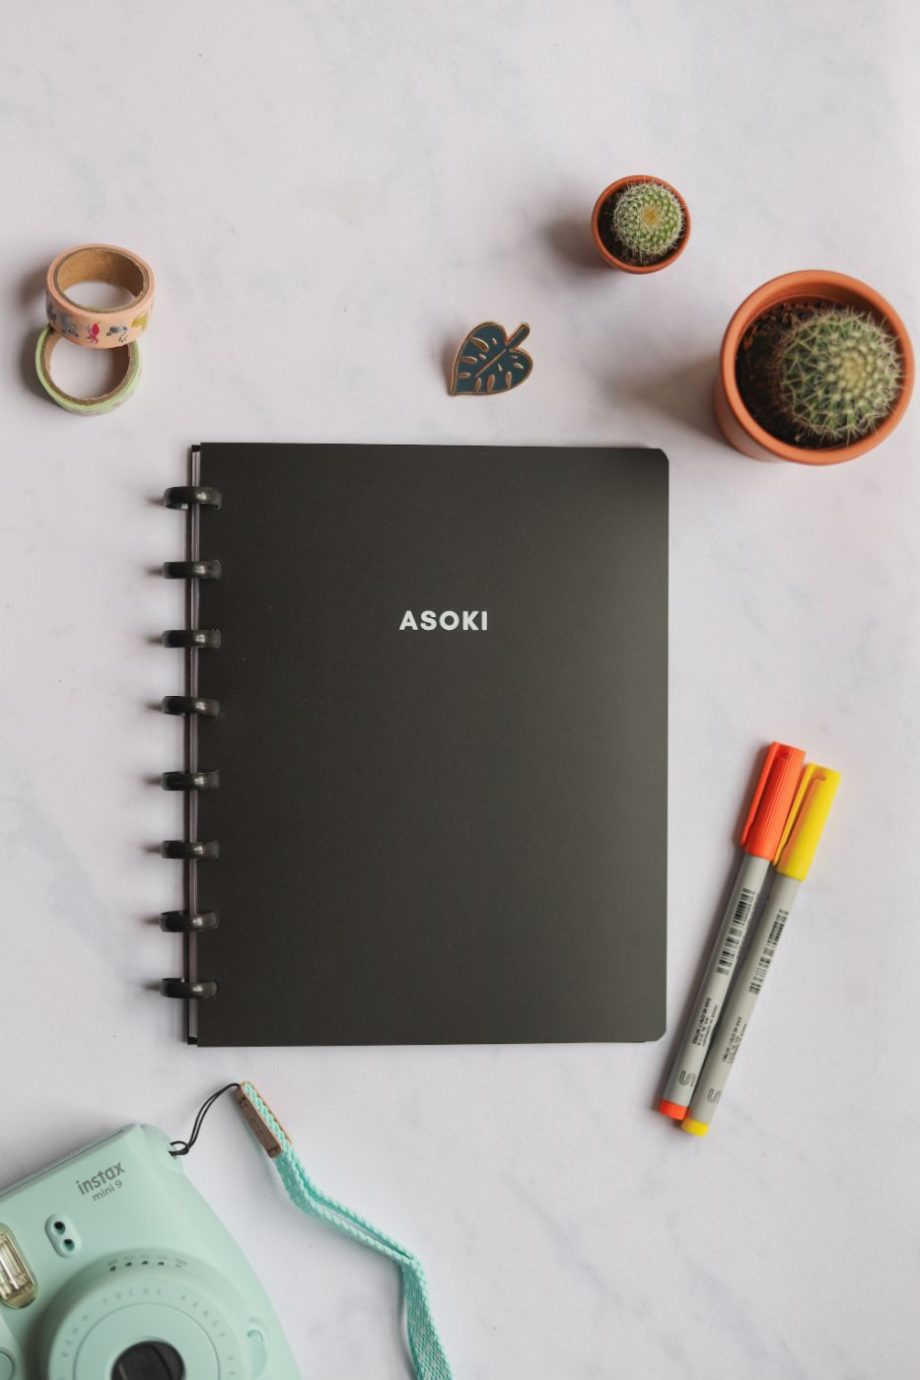 Black notebook with white letters next to assorted items on marble background